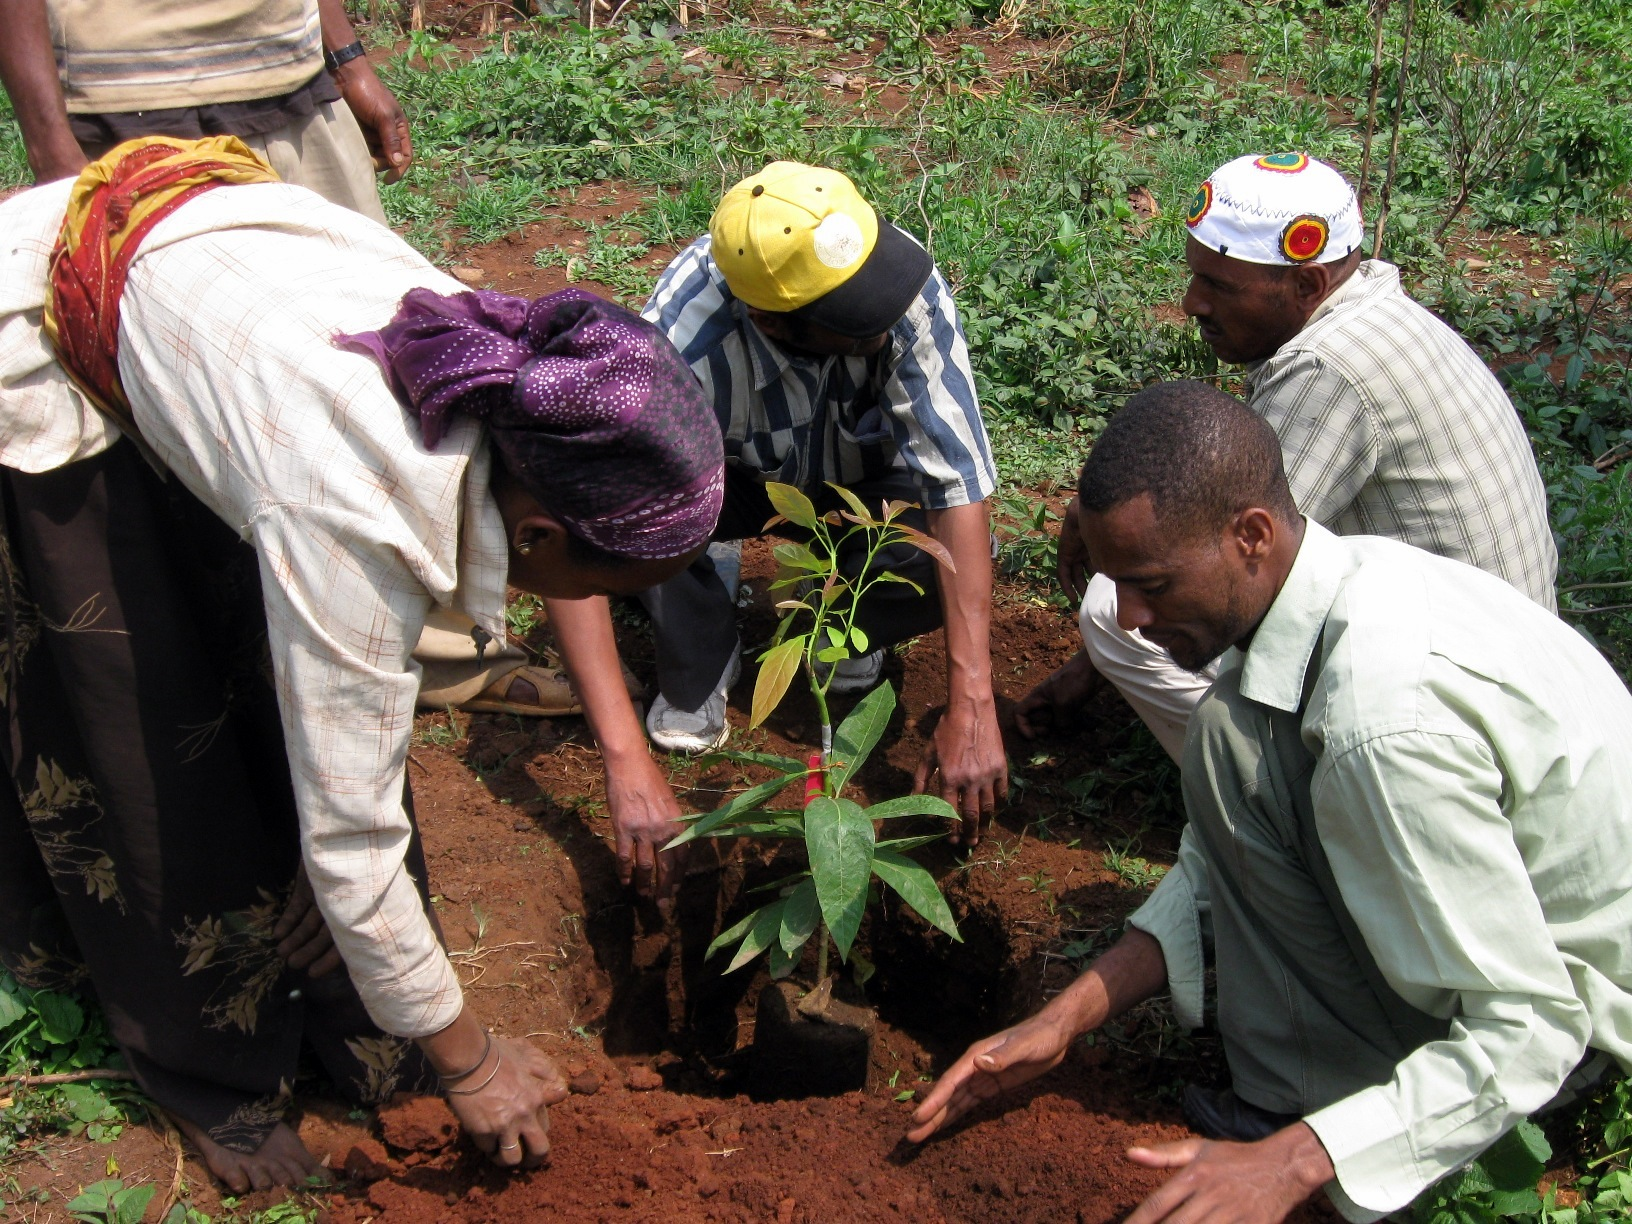 Mass tree-planting in Ethiopia broke world records, but its impact will take time